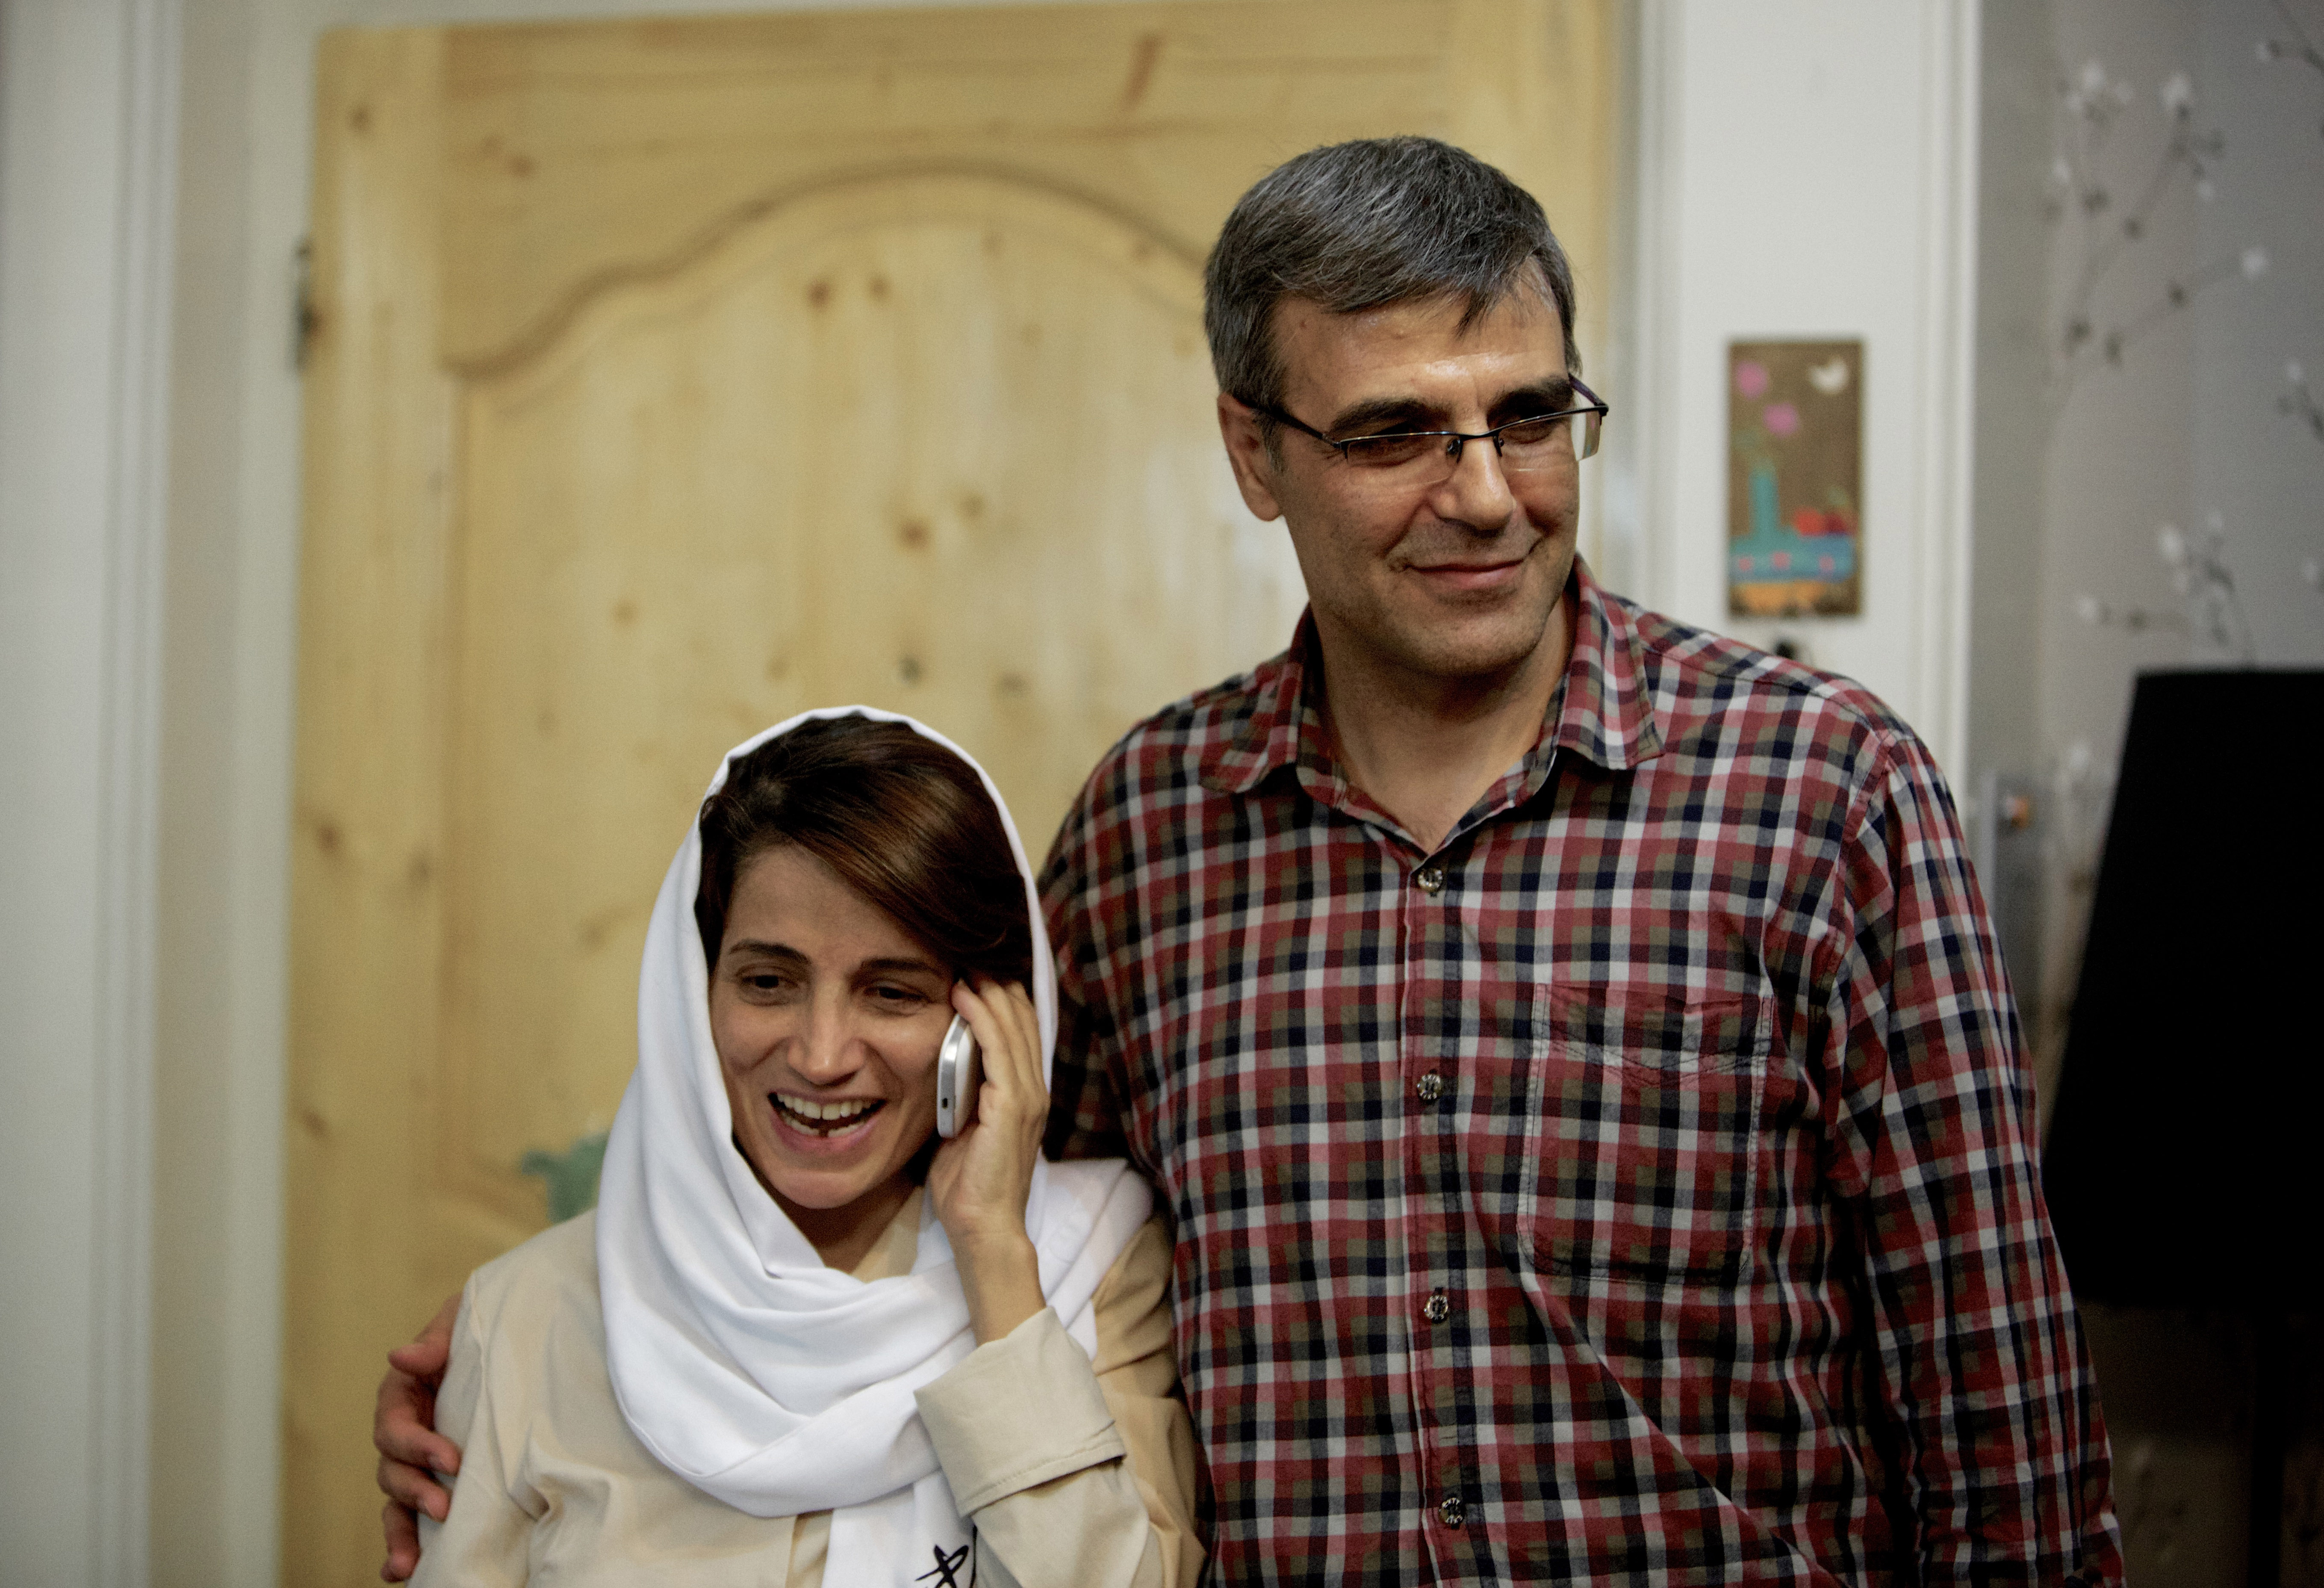 Iranian lawyer Nasrin Sotoudeh (L) speaks on the phone next to her husband Reza Khandan as they pose for a photo at their house in Tehran on September 18, 2013, after she was freed following three years in prison.